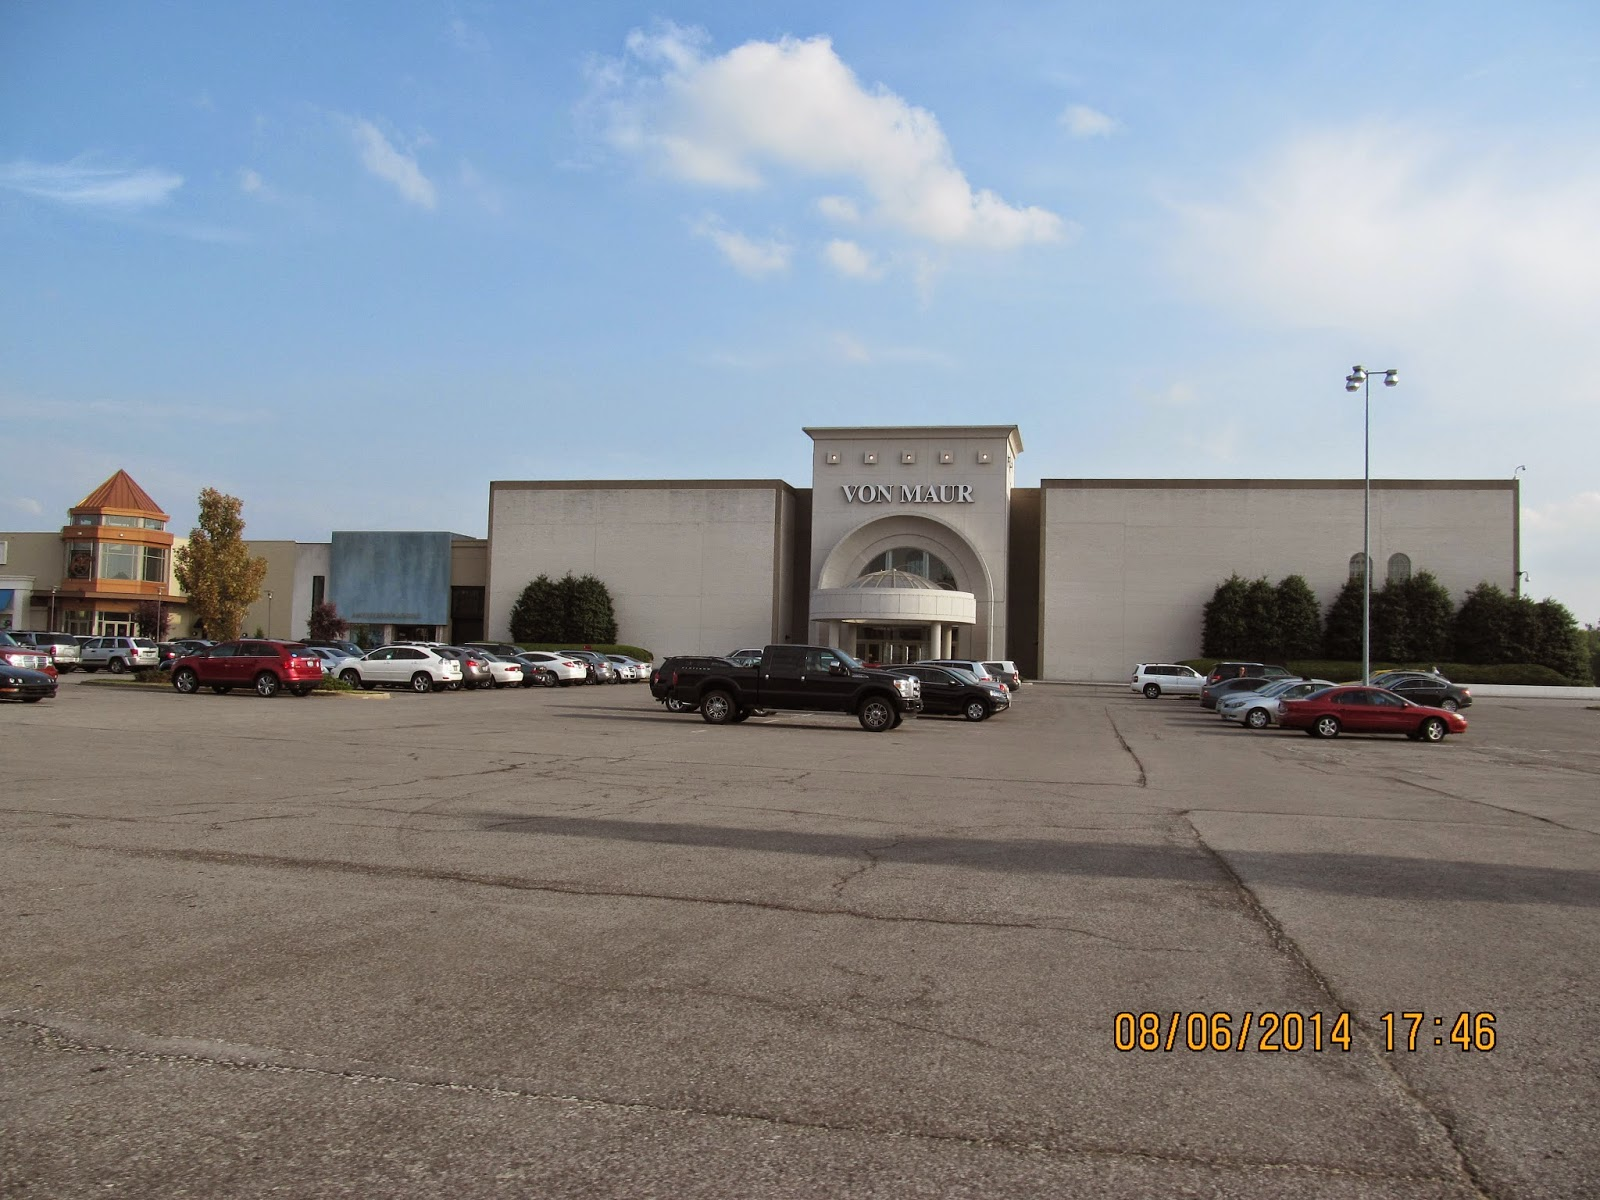 Here are pictures of the mall from august 2014